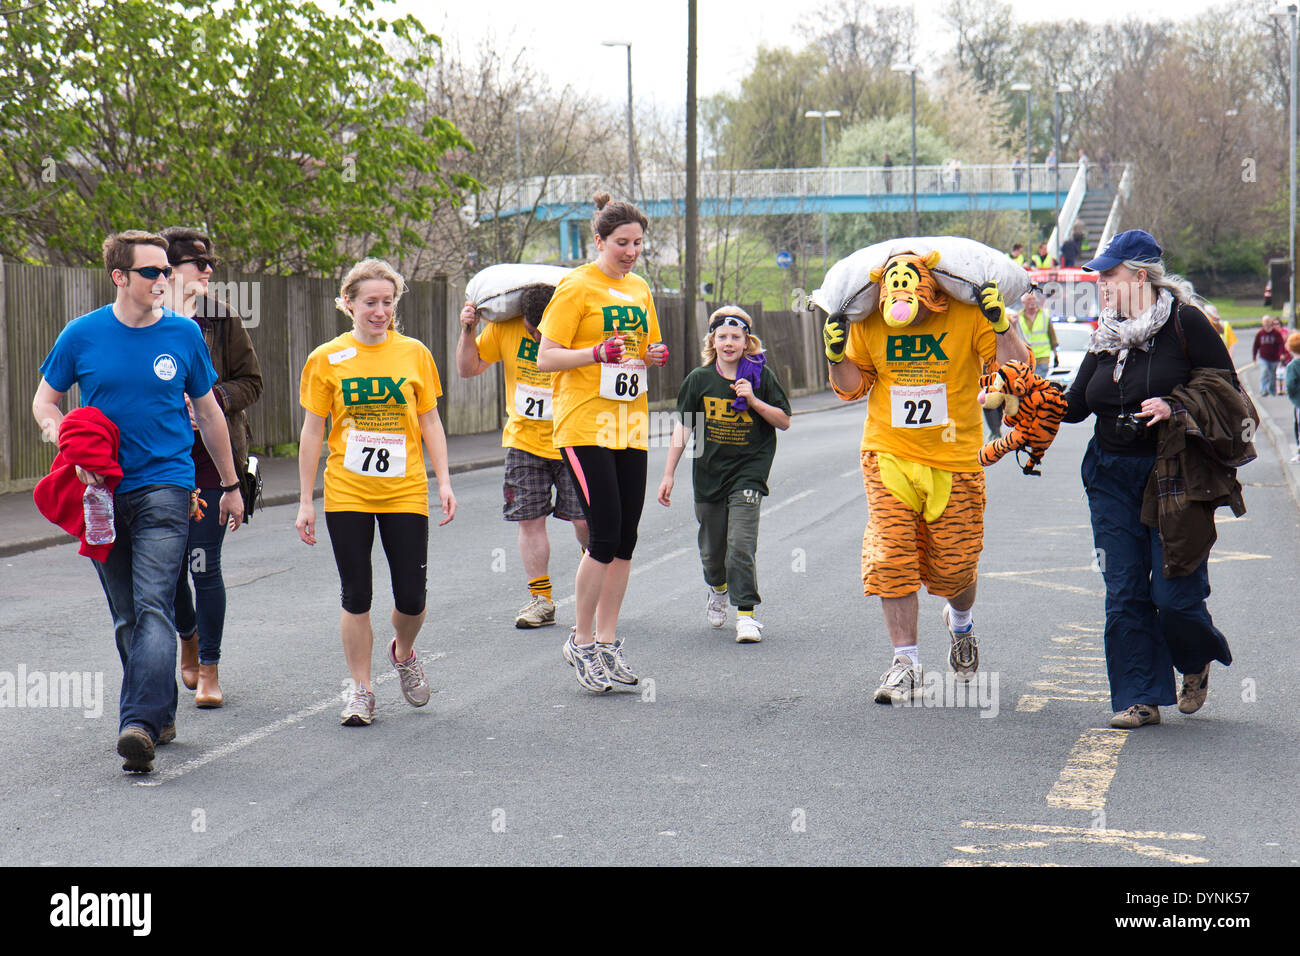 World Coal Carrying Championship, Gawthorpe, West Yorkshire, Easter Monday 2014.  male contestant running the race - Stock Image